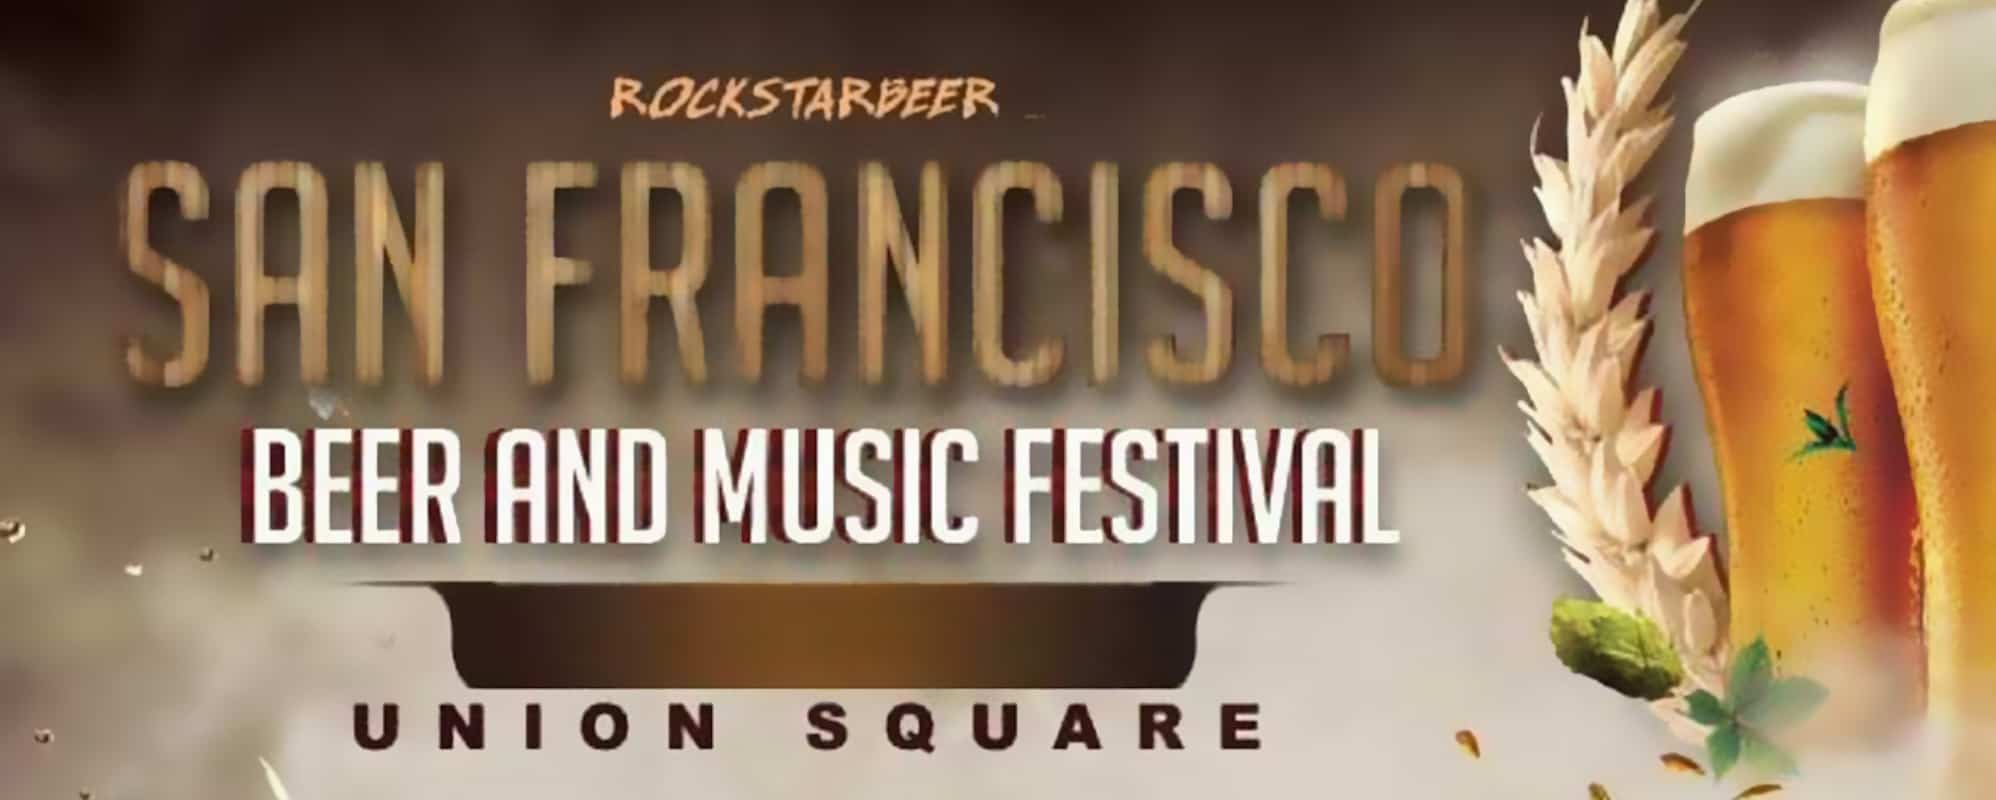 San Francisco Beer and Music Festival Union Square